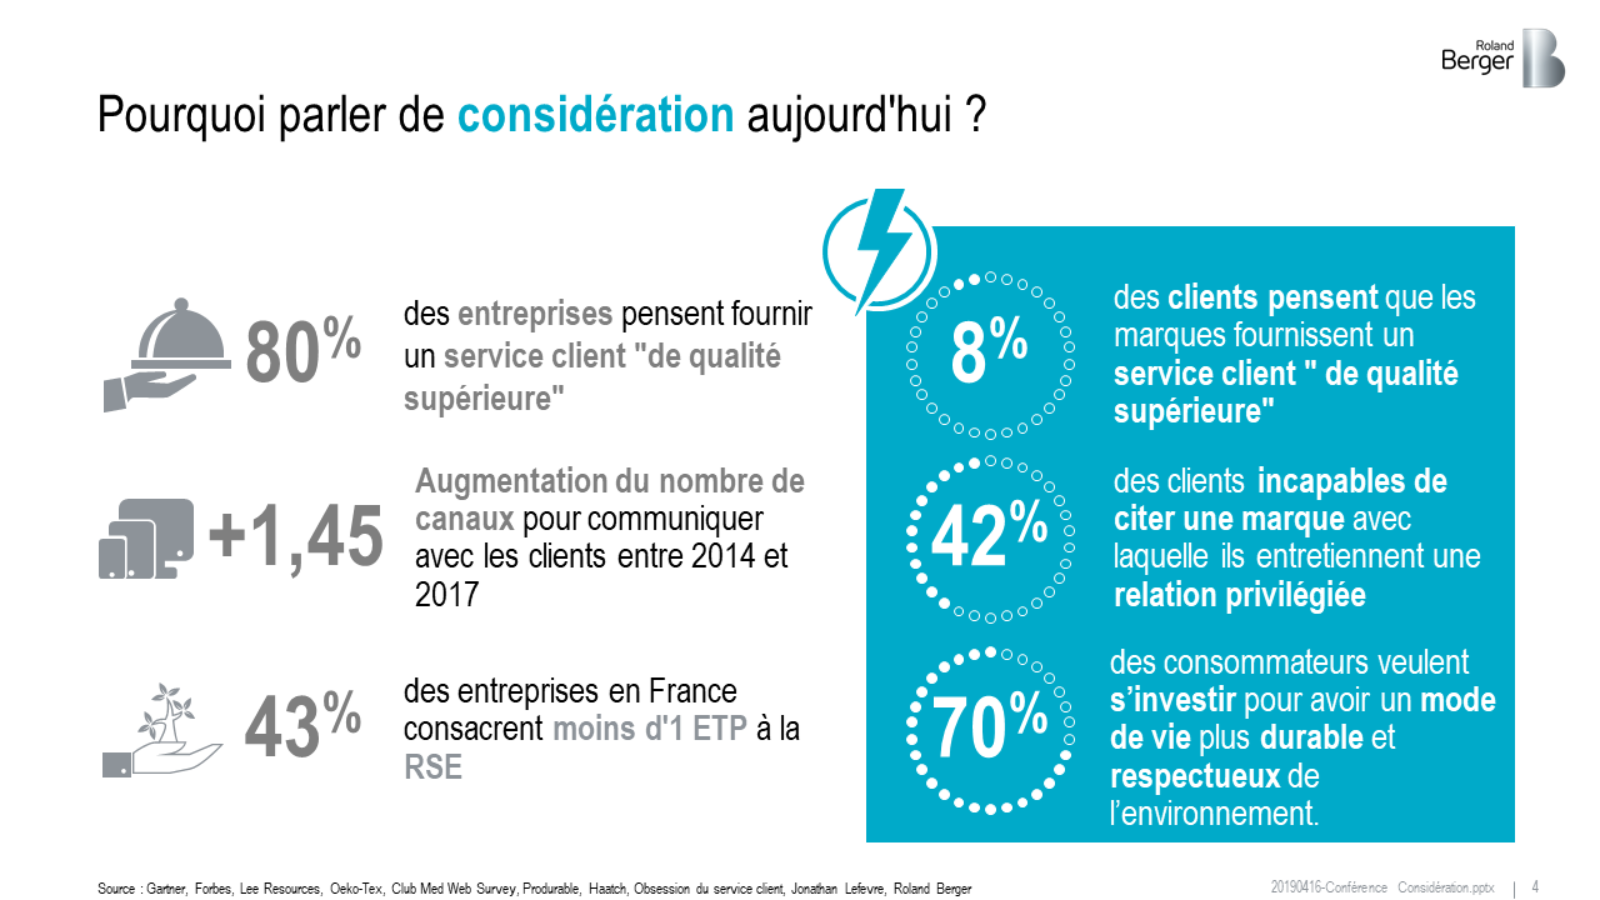 https://www.rolandberger.com/content_assets/content_images/captions/Pourquoi-parle-t-on-aujourd%E2%80%99hui-de-consid%C3%A9ration_image_caption_w1280.png